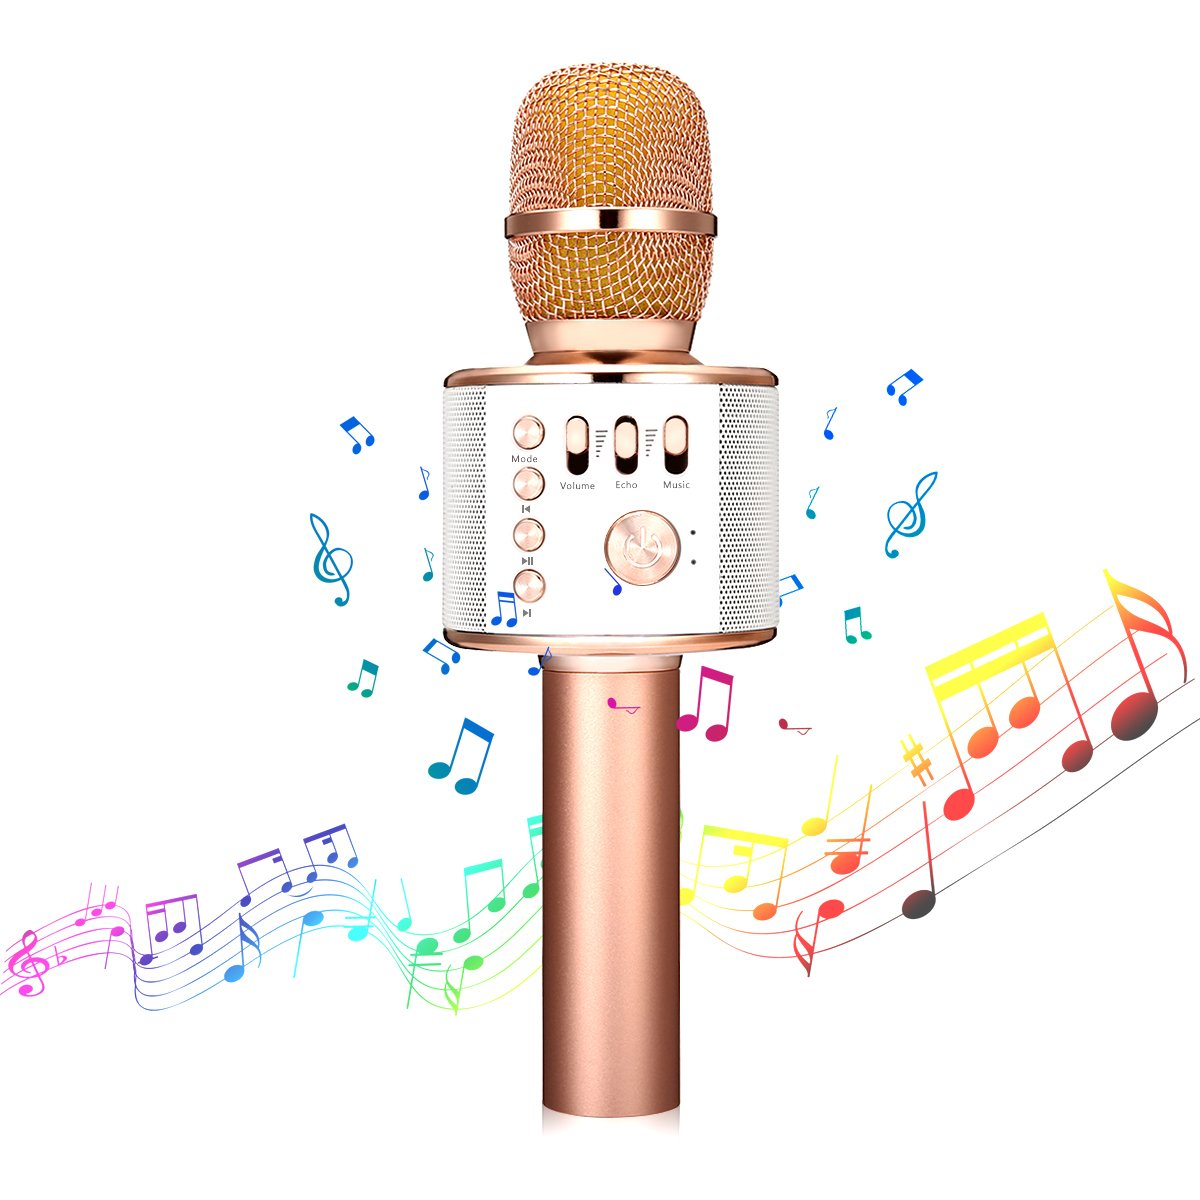 Microphone karaoké sans fil - NASUM 3-en-1 Portable intégré Bluetooth 4.1 haut-parleur Machine pour Android / iPhone / iPad / PC ou tout smartphone, pour chanter, Karaoké, enregistrement (or rose) NASUMbcjdbcwibcek8